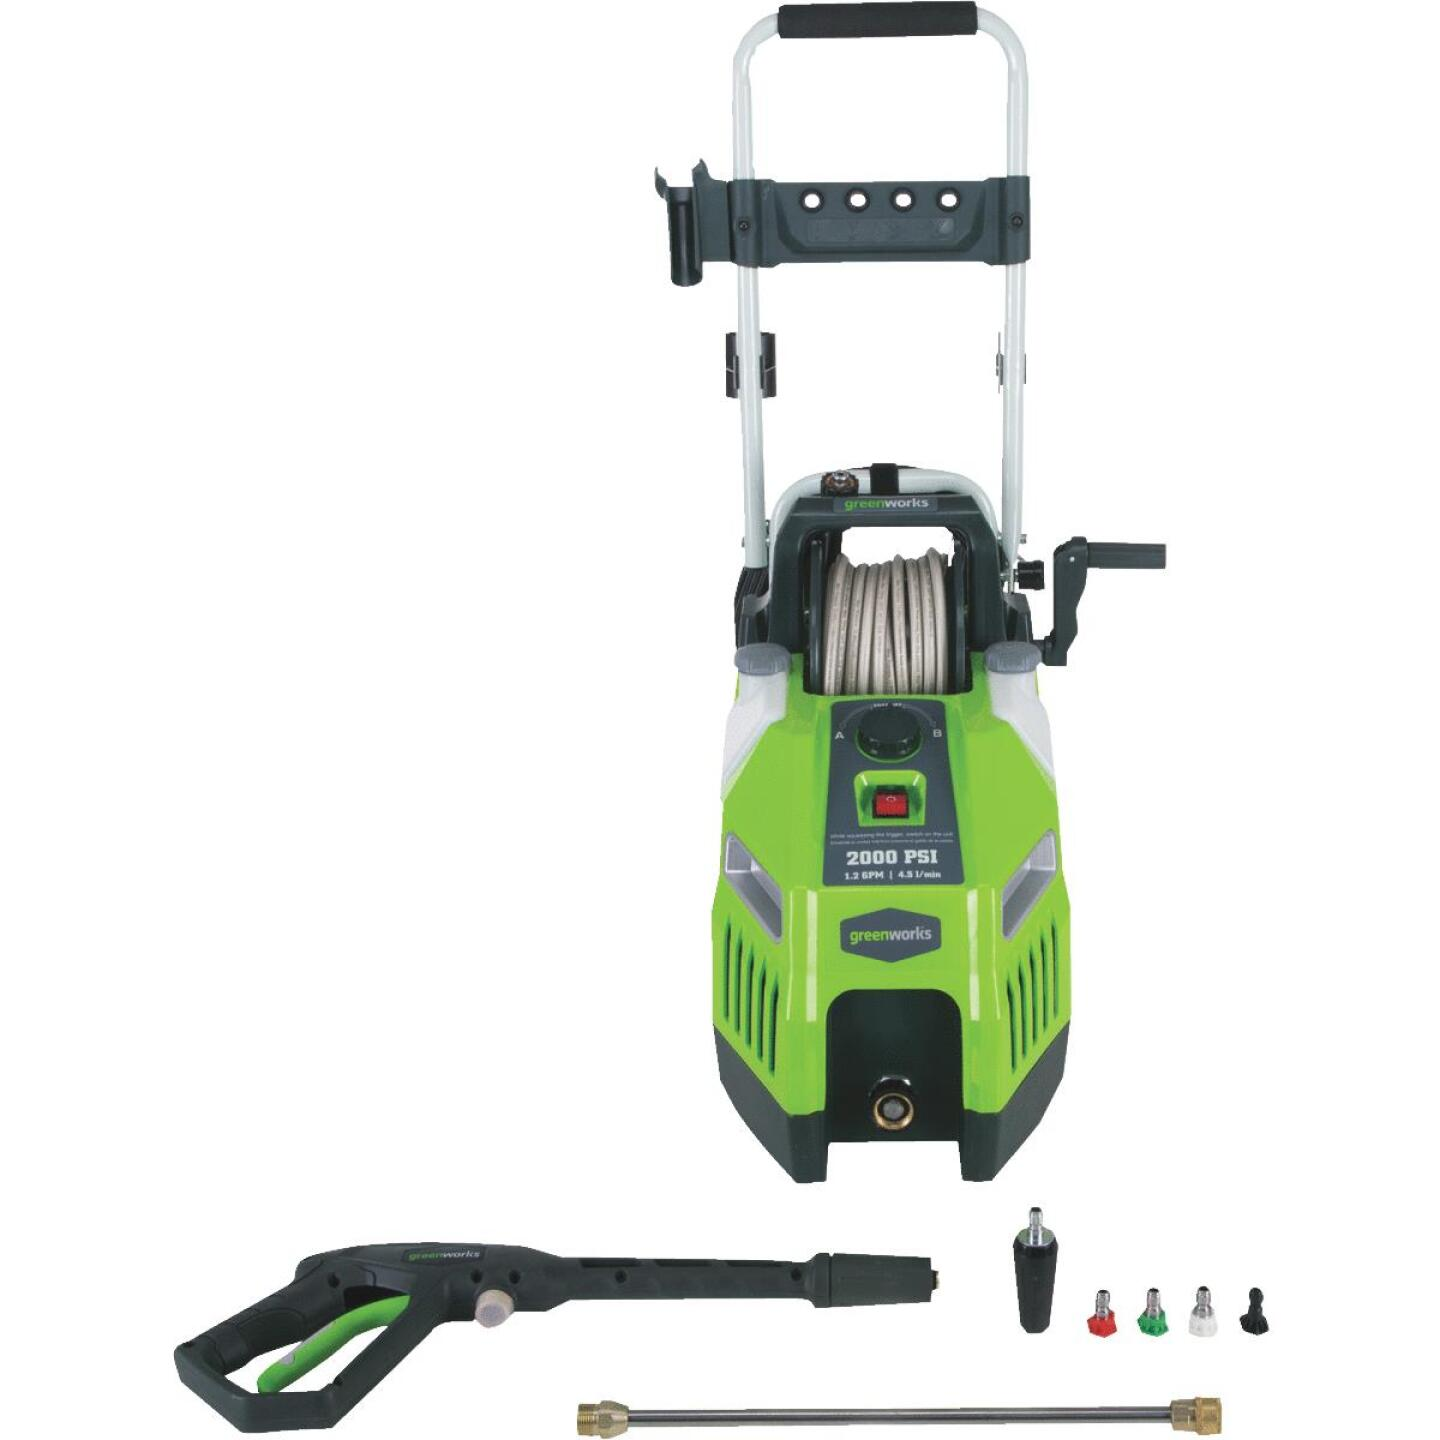 Greenworks 2000 psi 1.2 GPM Cold Water Pressure Washer Image 1